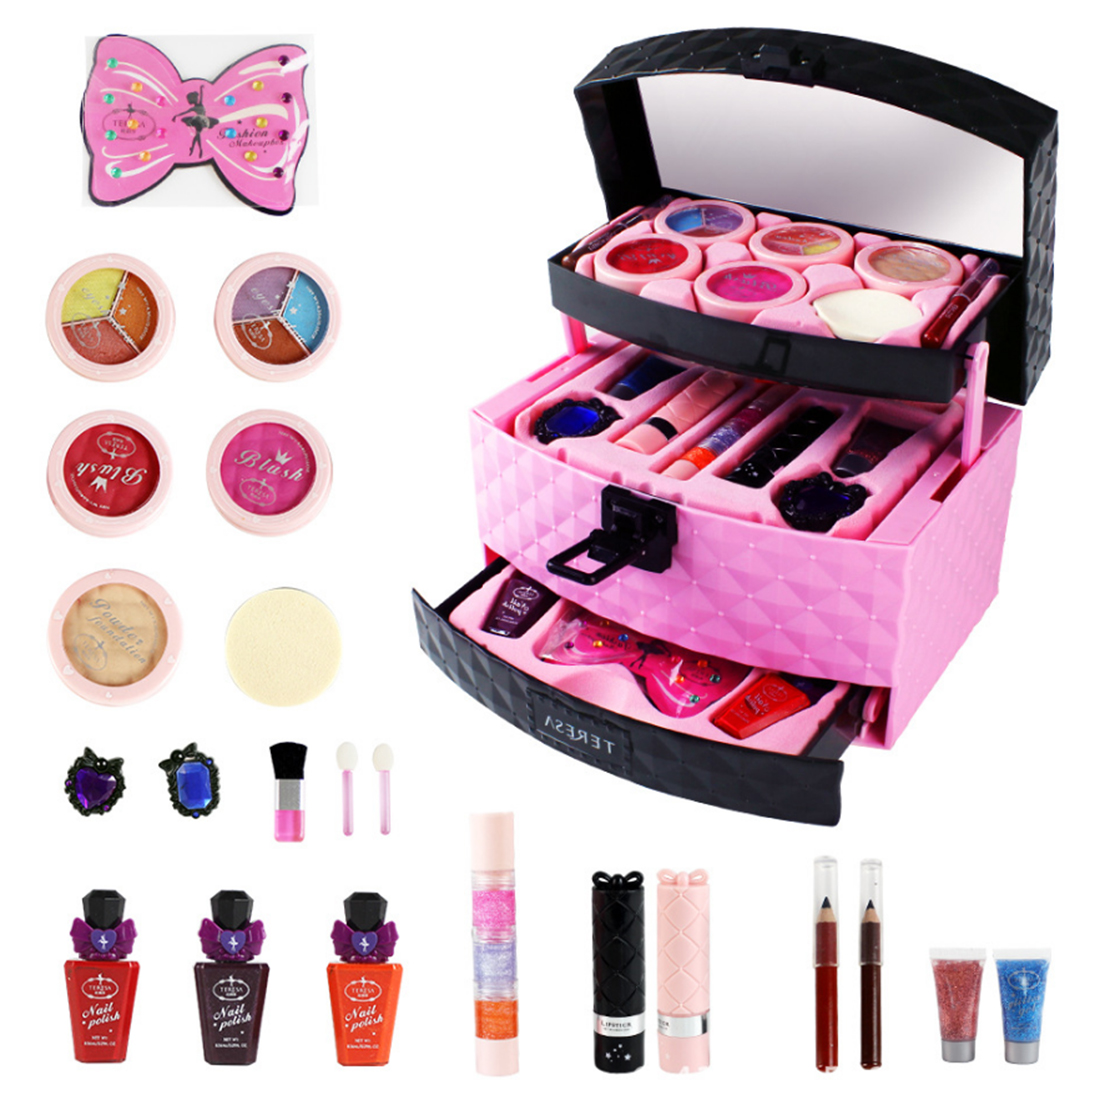 Makeup Toys Baby Girls Children Pretend Play Toys Little Princess Set Case Cosmetic Makeup Kit Play Sets Gifts For Children Kids